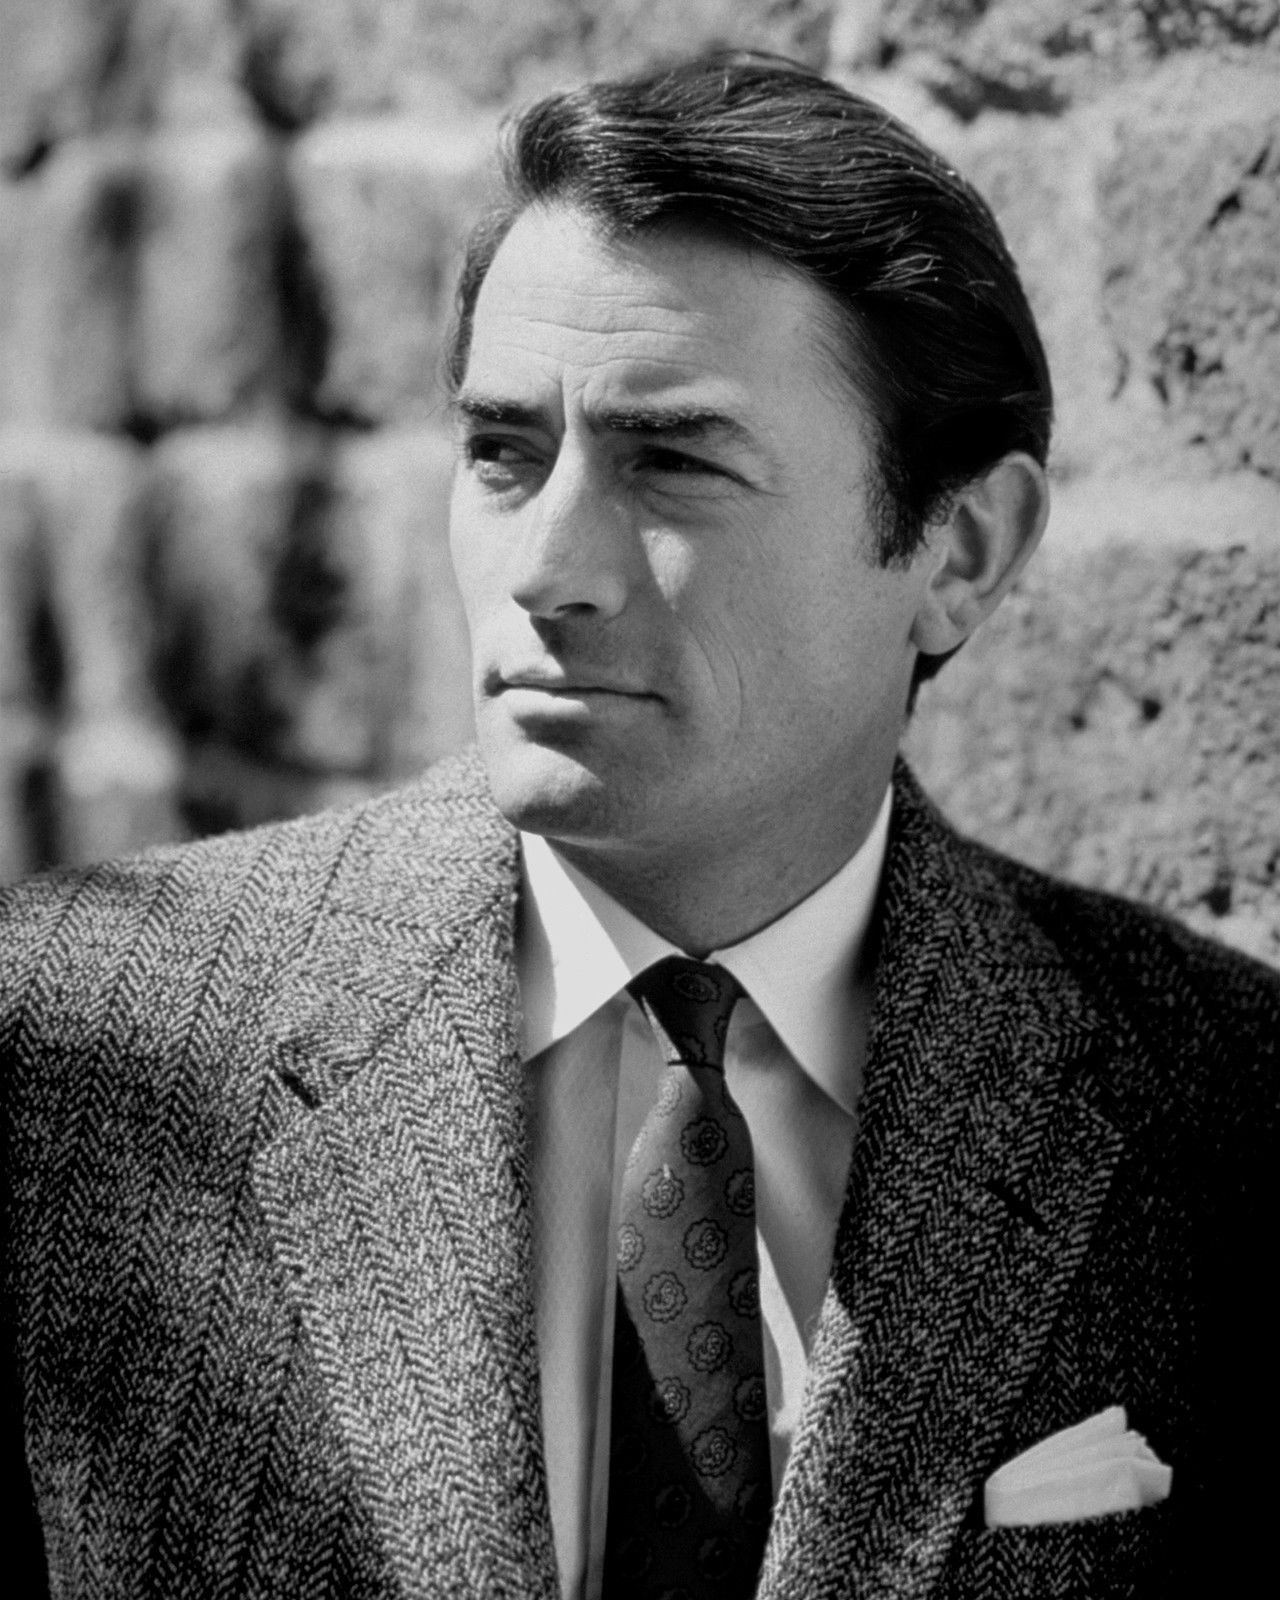 Publicity Photo of American film actor Gregory Peck | Photo: Public Domain, Wikimedia Commons